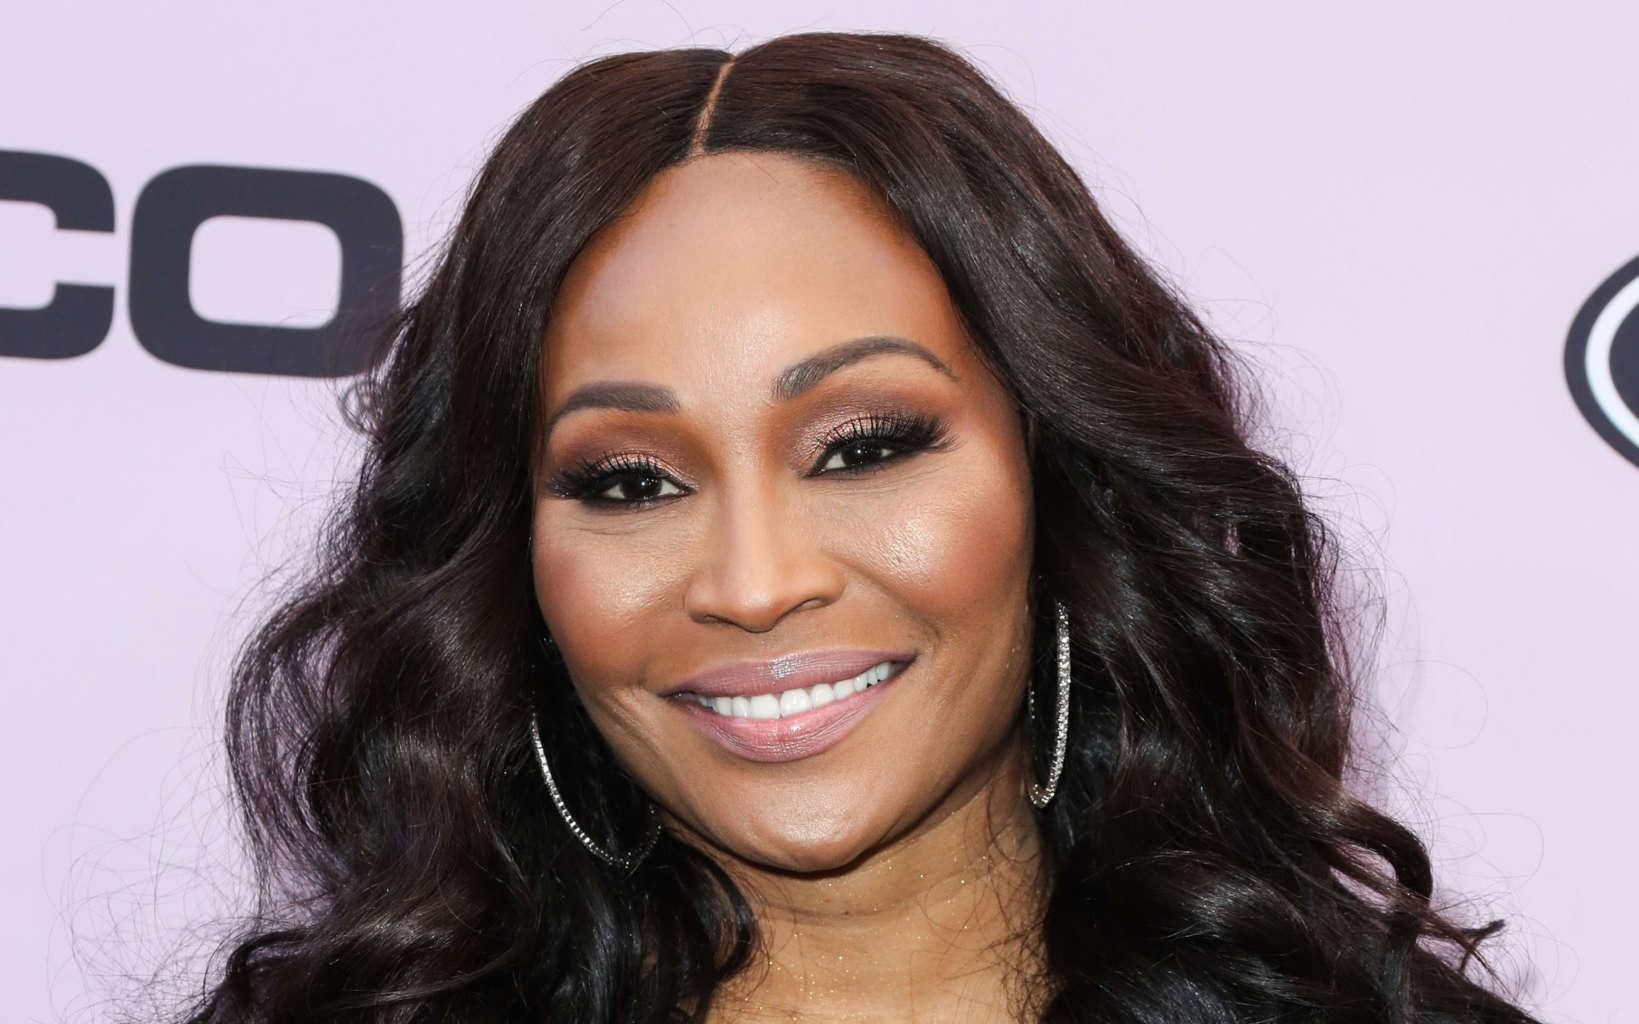 Cynthia Bailey Shows Rolling Stone Magazine Exploring How The Black Lives Matter Movement Was Built - But Fans Find Wrong Depictions